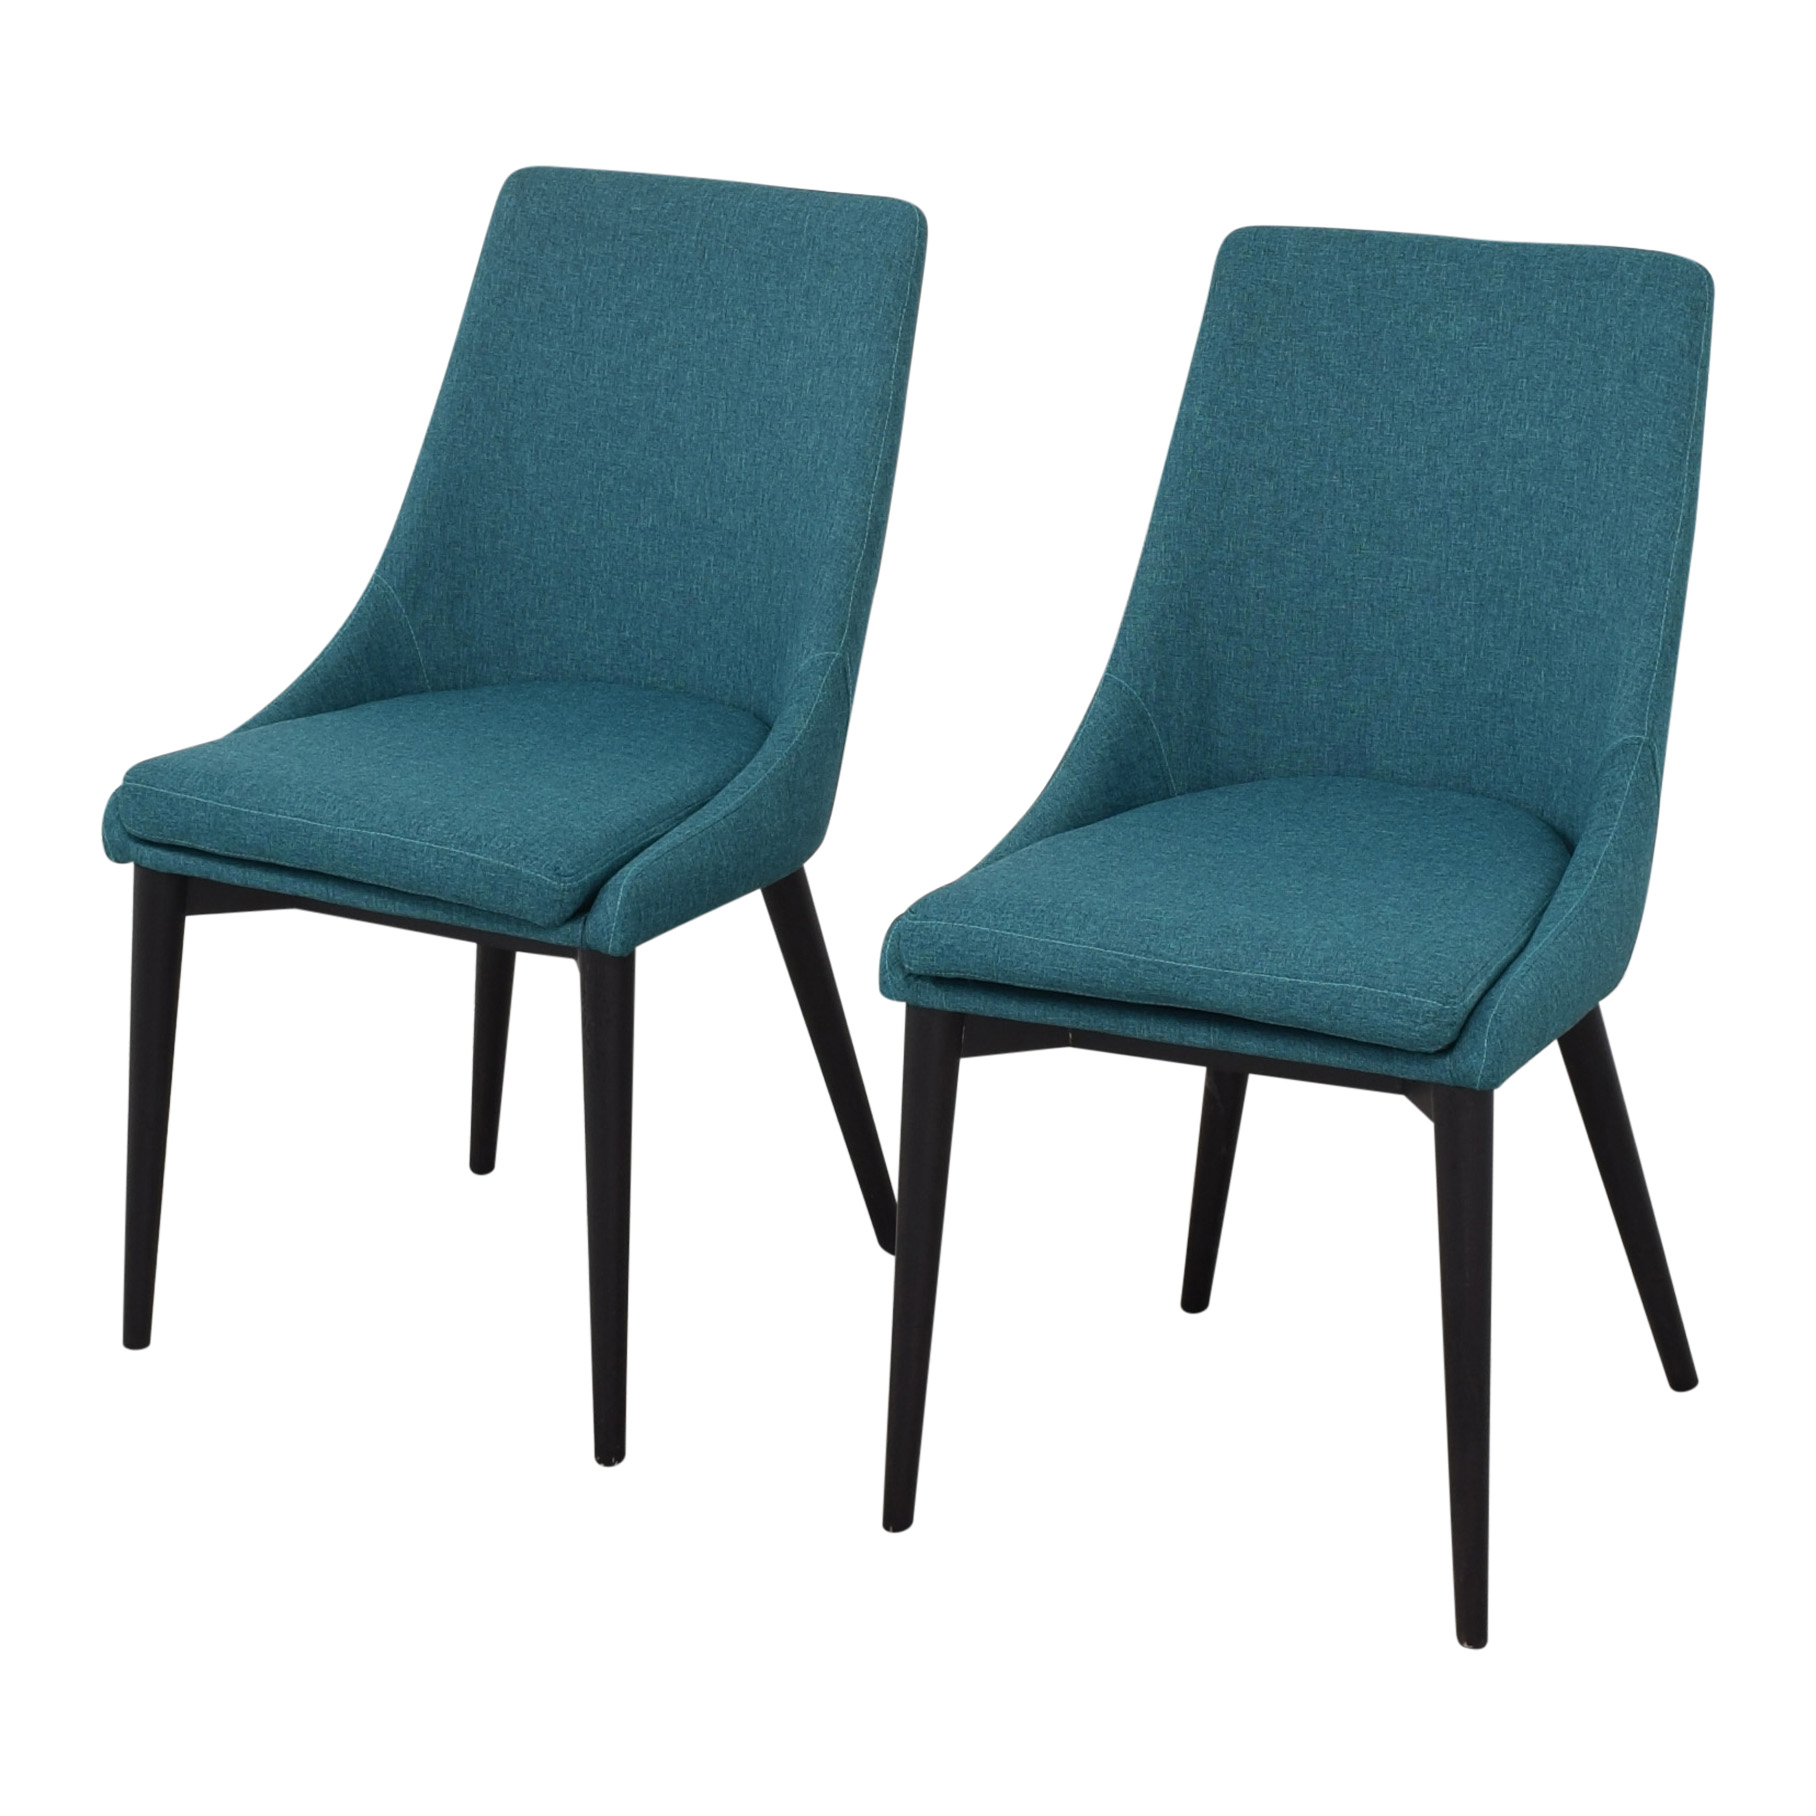 Modway Viscount Dining Chairs / Dining Chairs